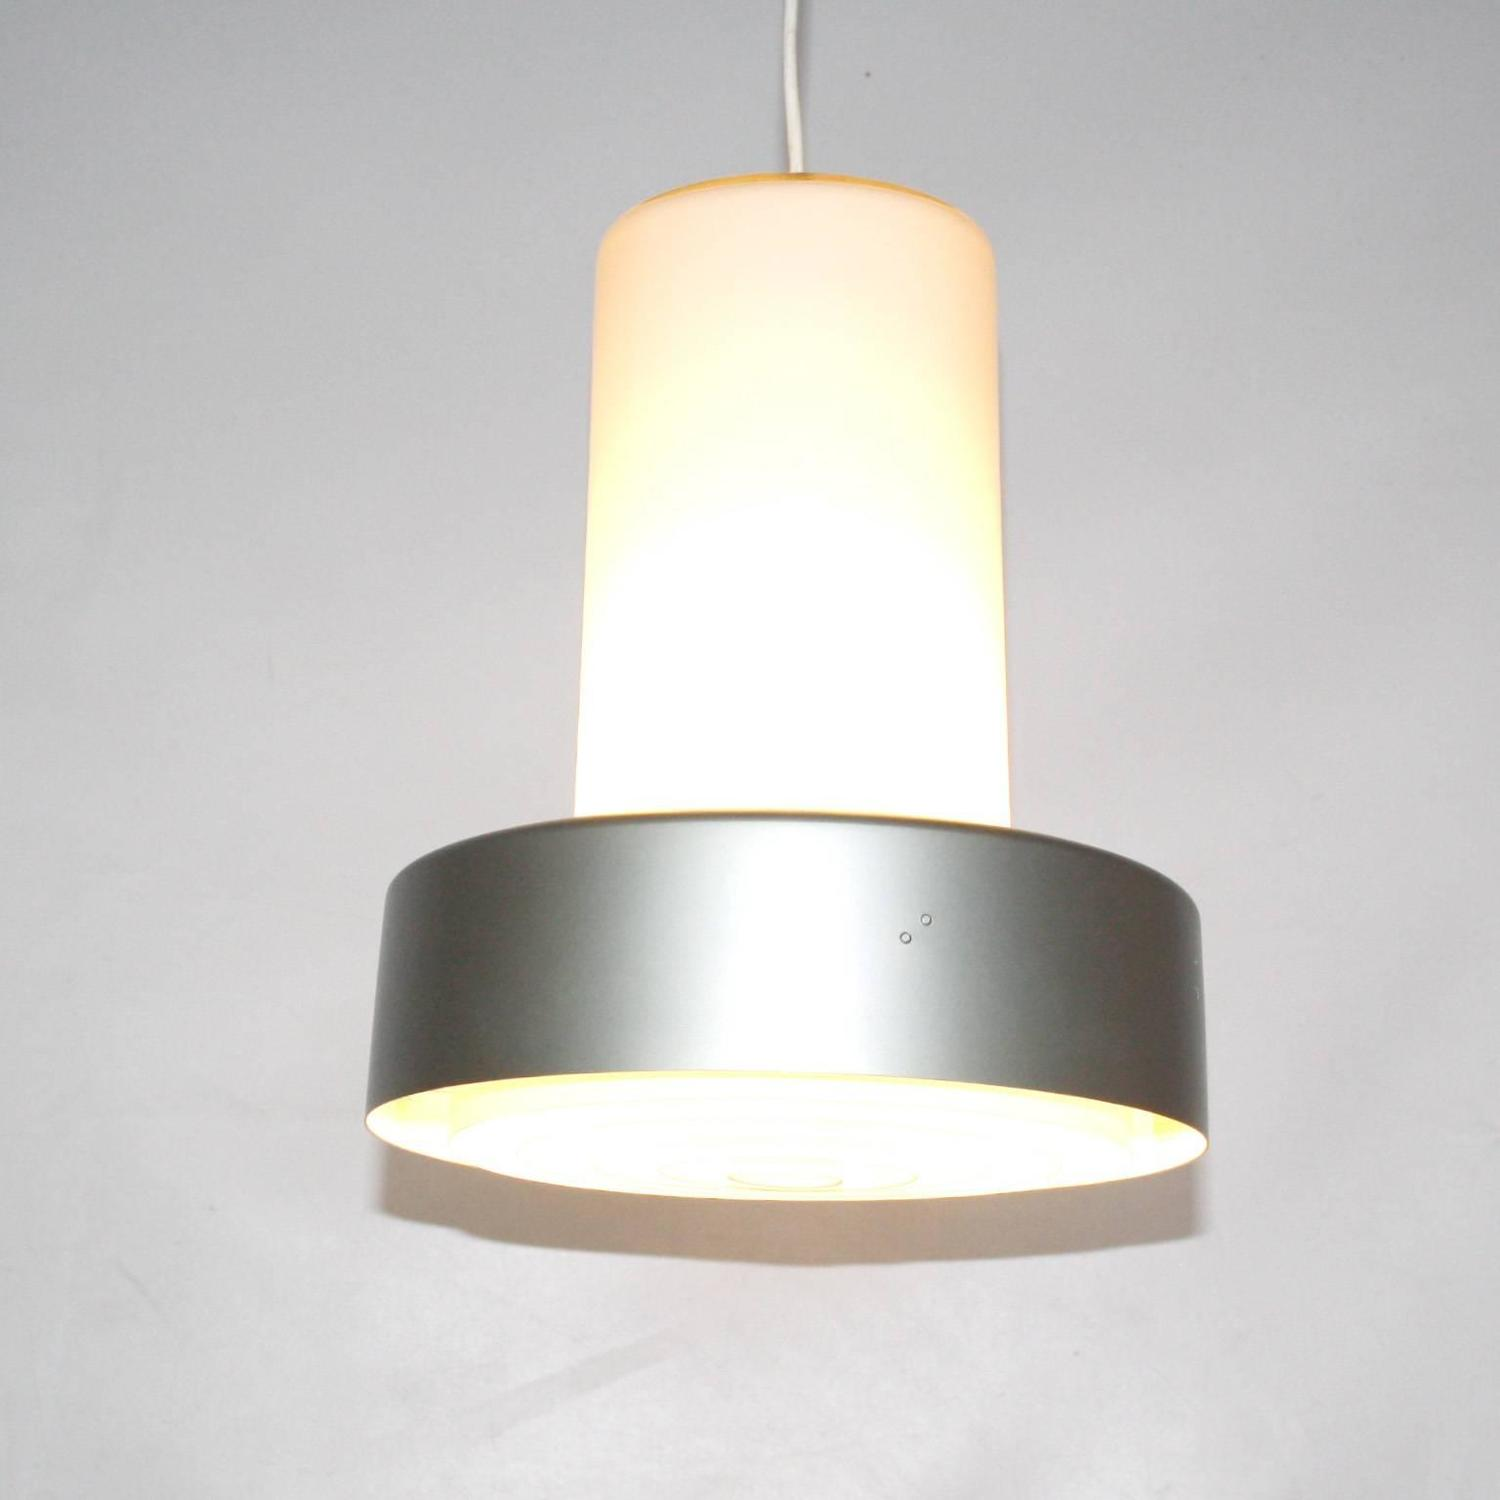 Glass And Metal Pendant Light By Lisa Johansson Pape For